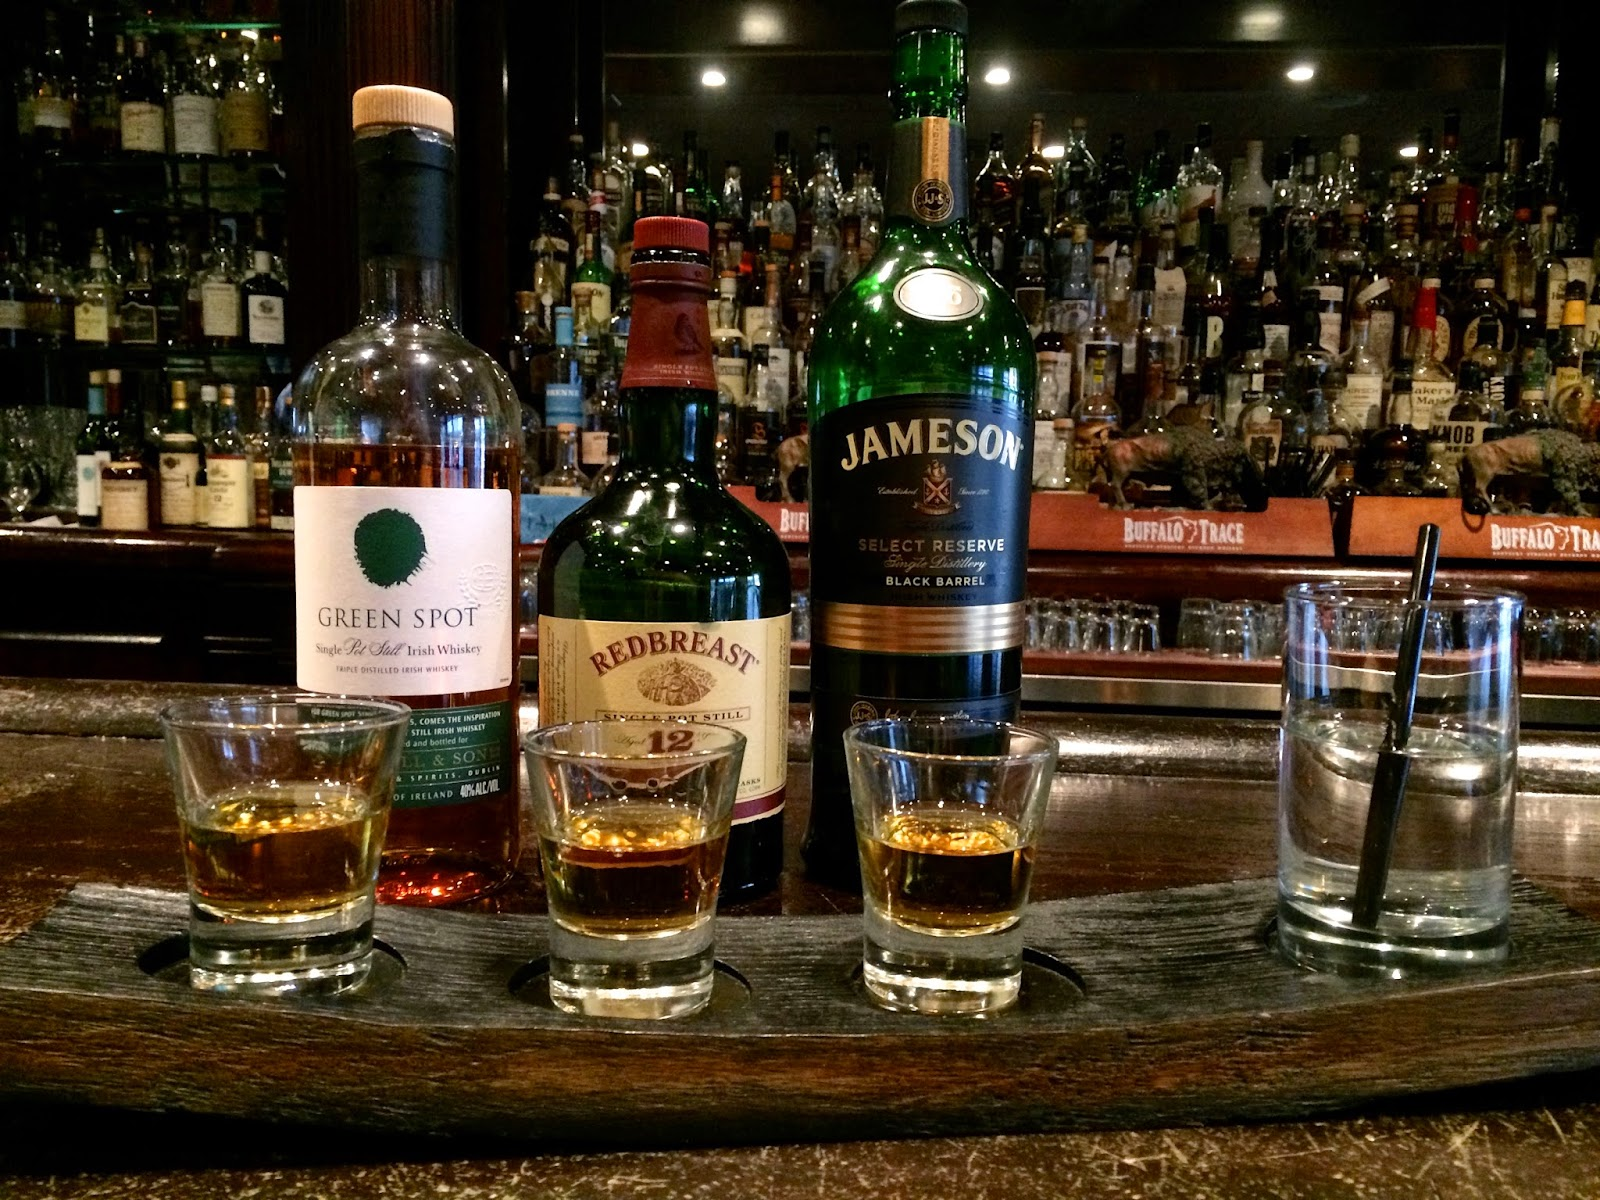 Irish Whiskey Flight featuring Green Spot, Redbreast 12 Year, and Jameson Black Barrel at Lock & Key $18